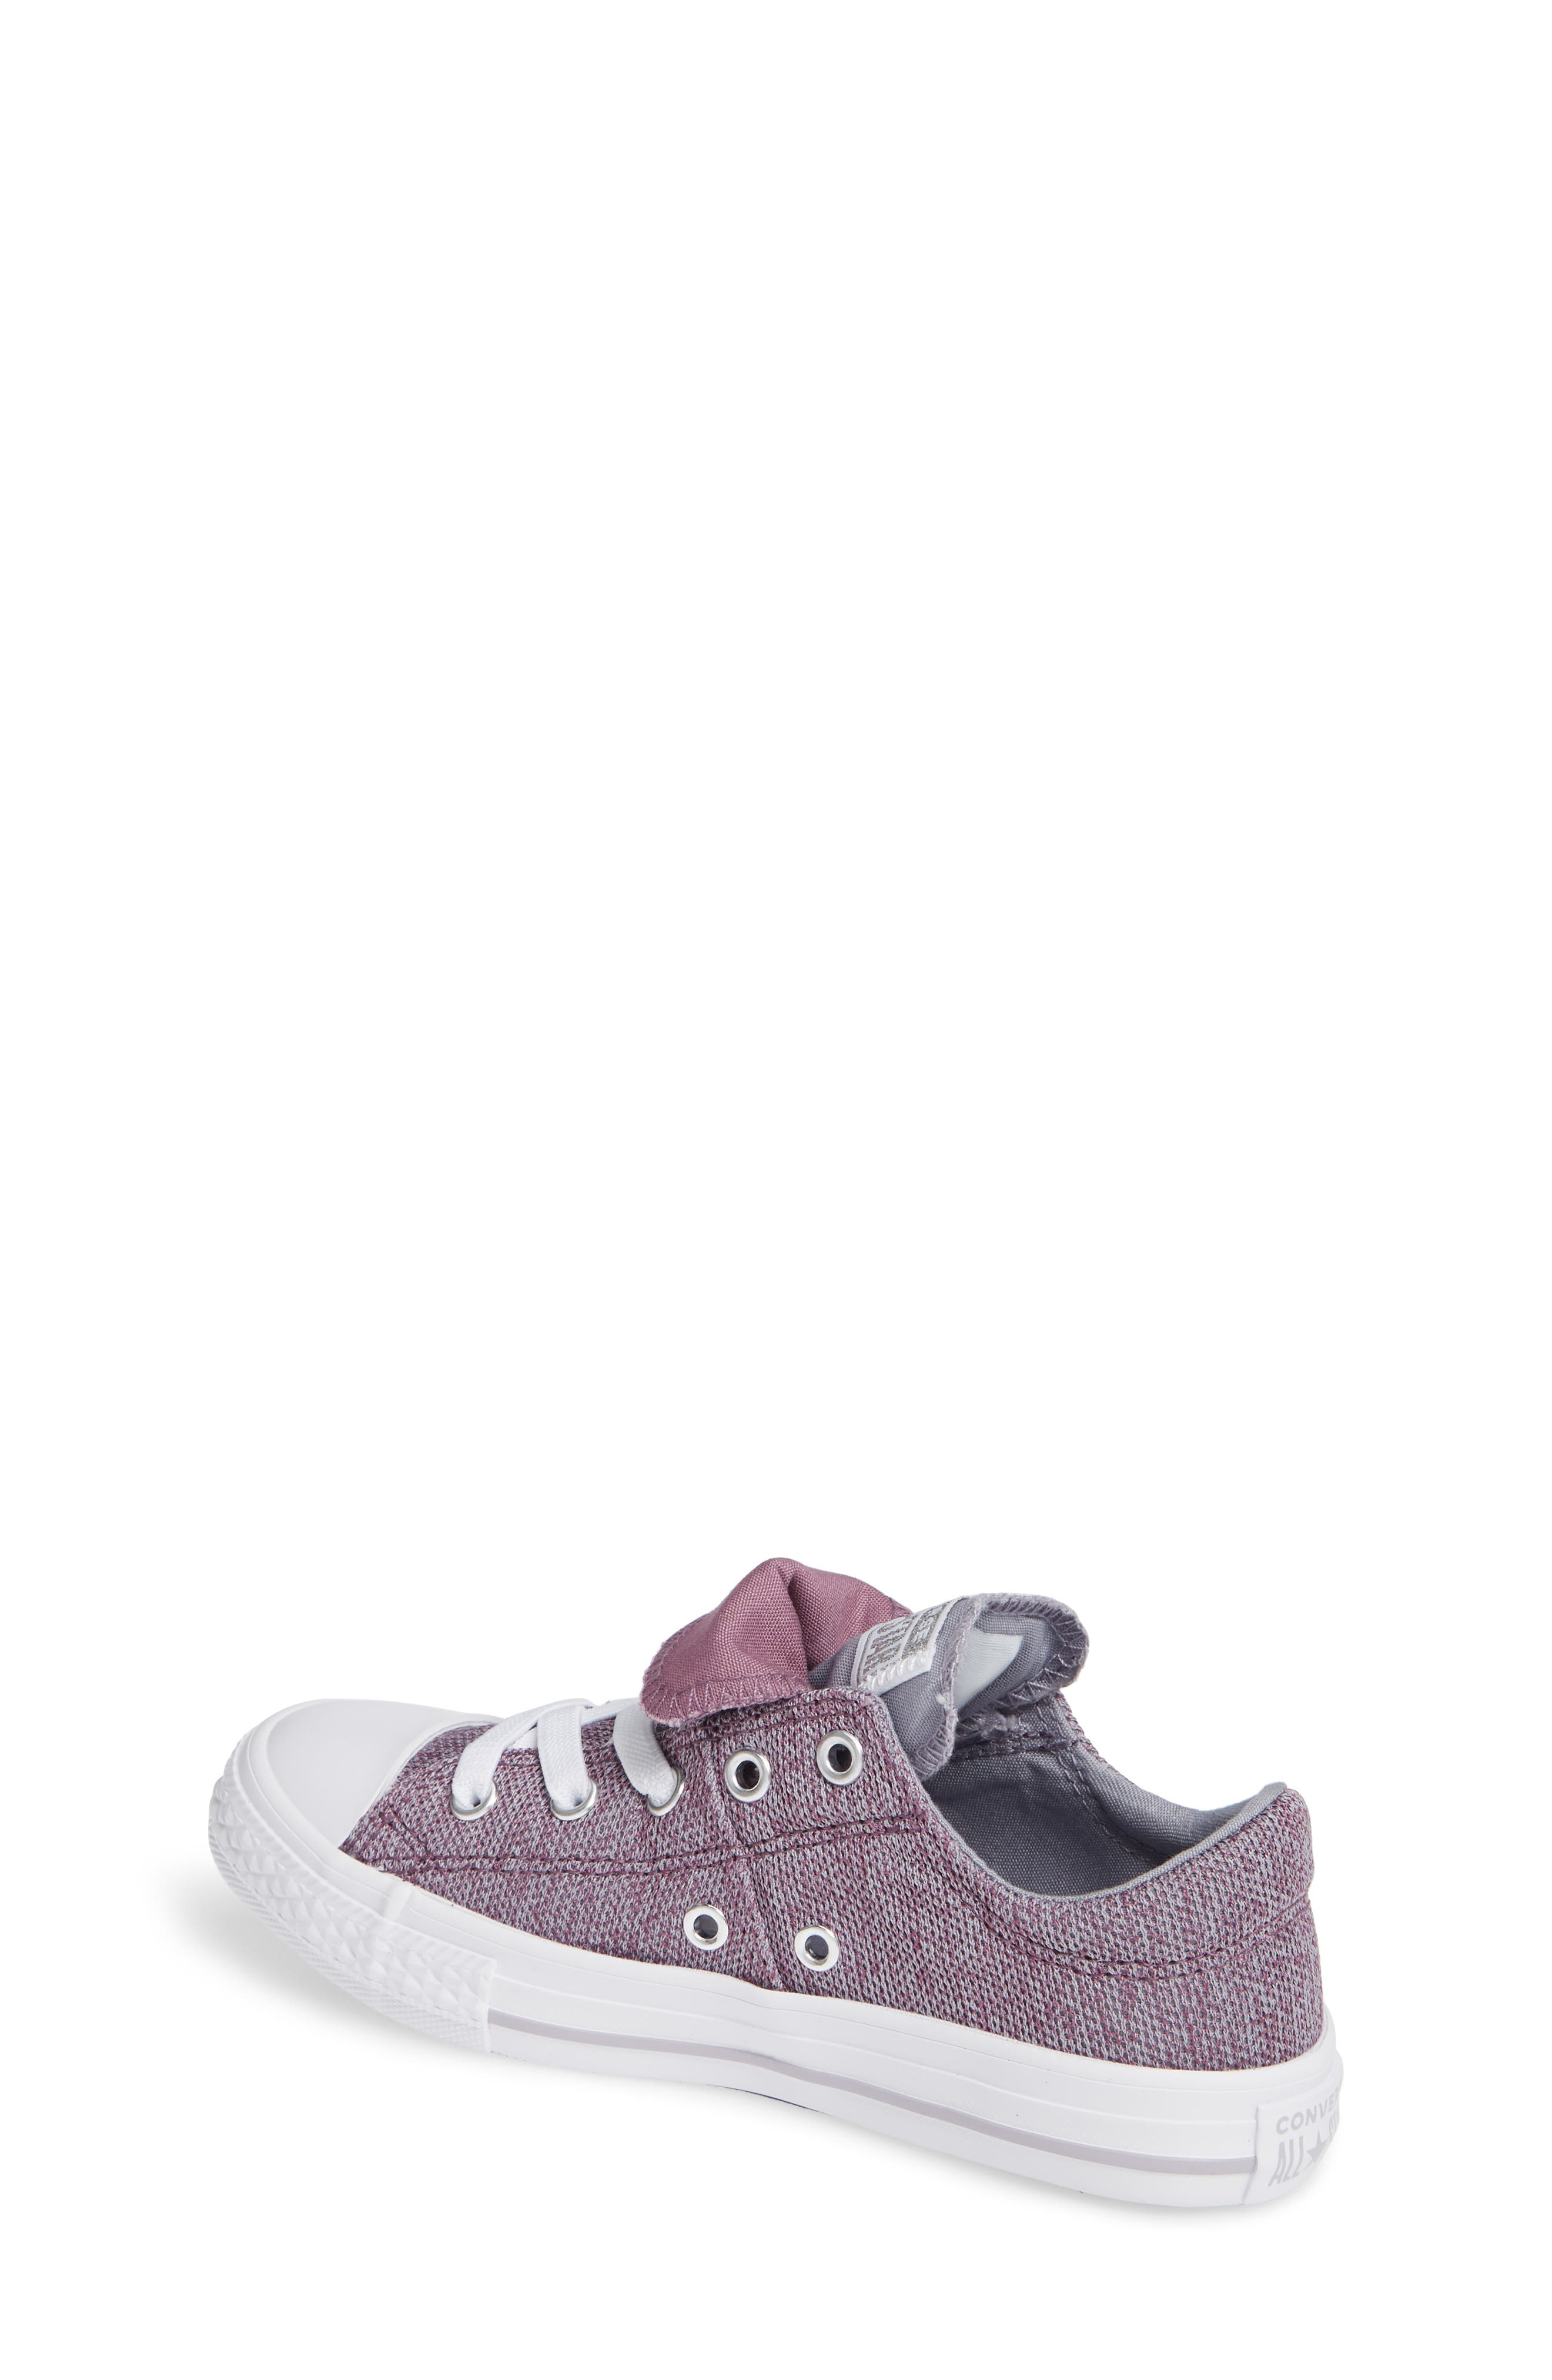 ,                             Chuck Taylor<sup>®</sup> All Star<sup>®</sup> Maddie Double Tongue Sneaker,                             Alternate thumbnail 50, color,                             500